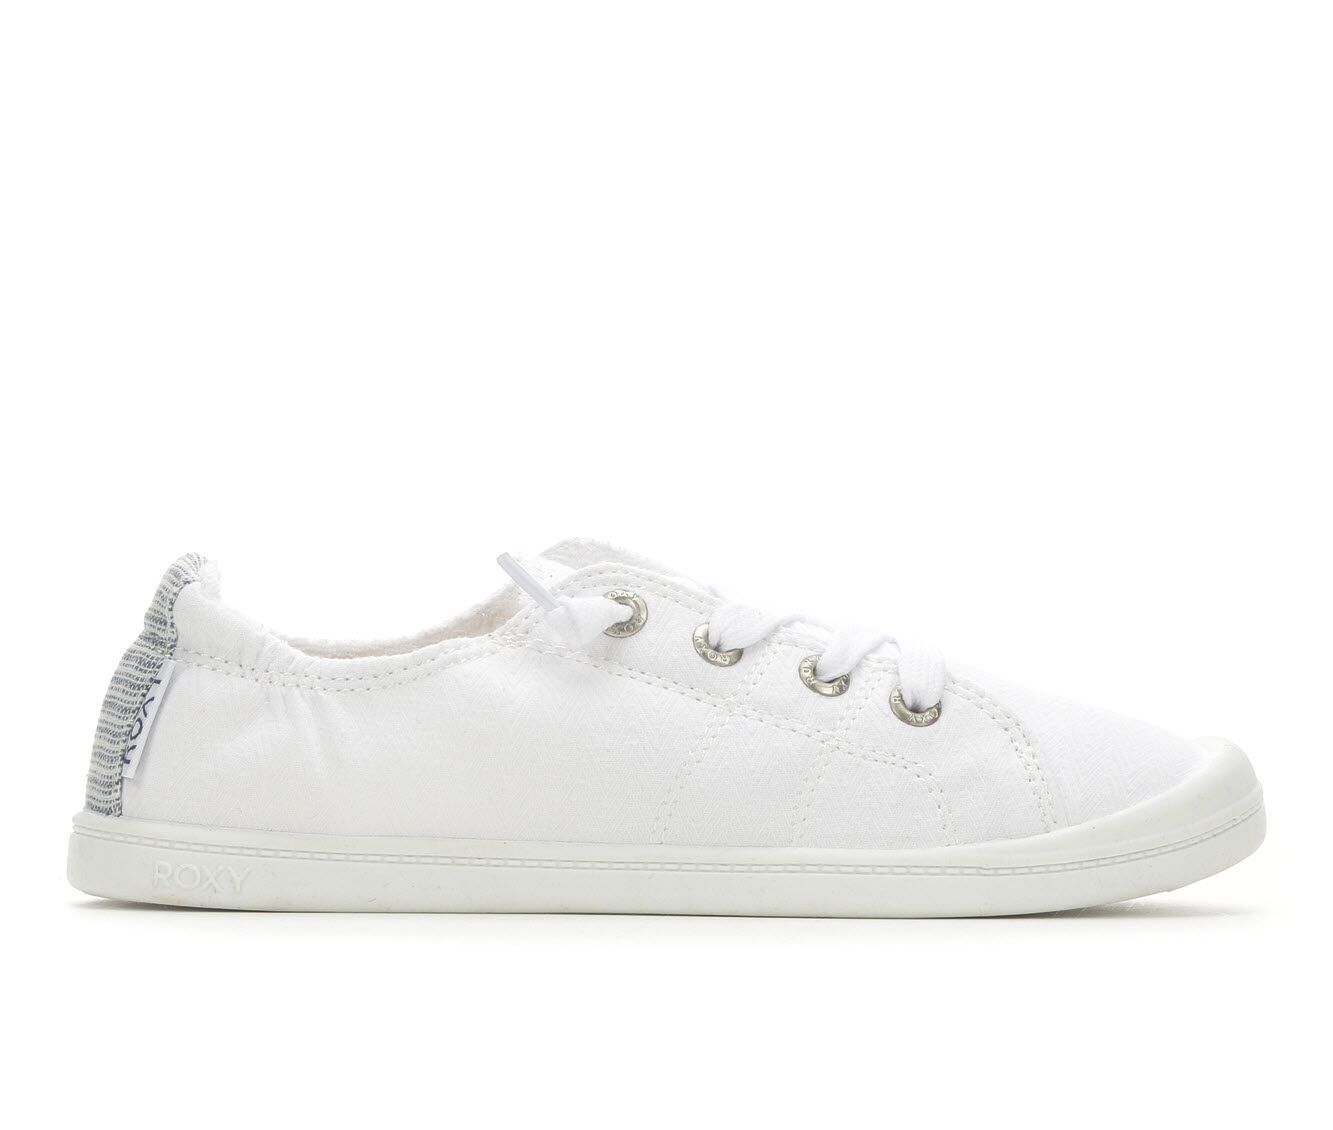 Women's Roxy Bayshore Sneakers White Smooth